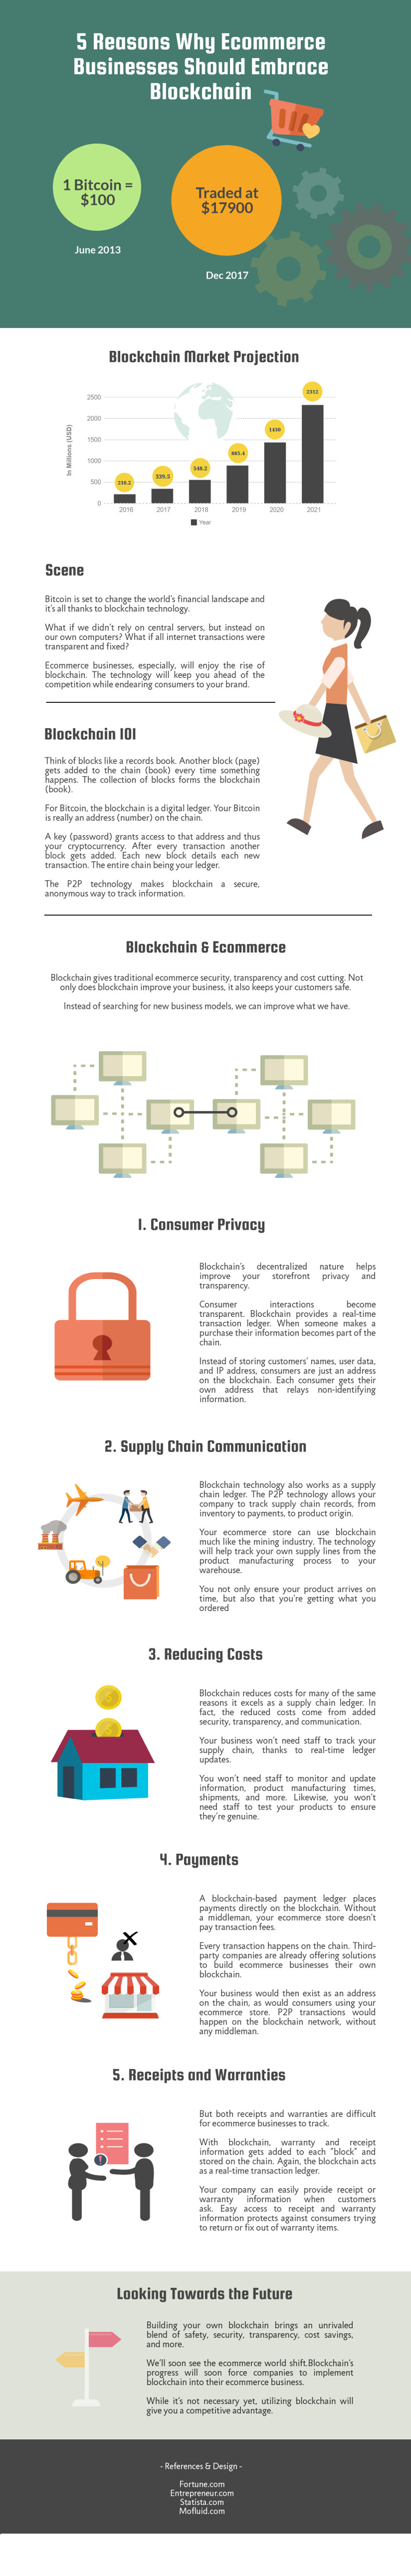 Five Reasons Blockchain for E-Commerce Businesses [Infographic]